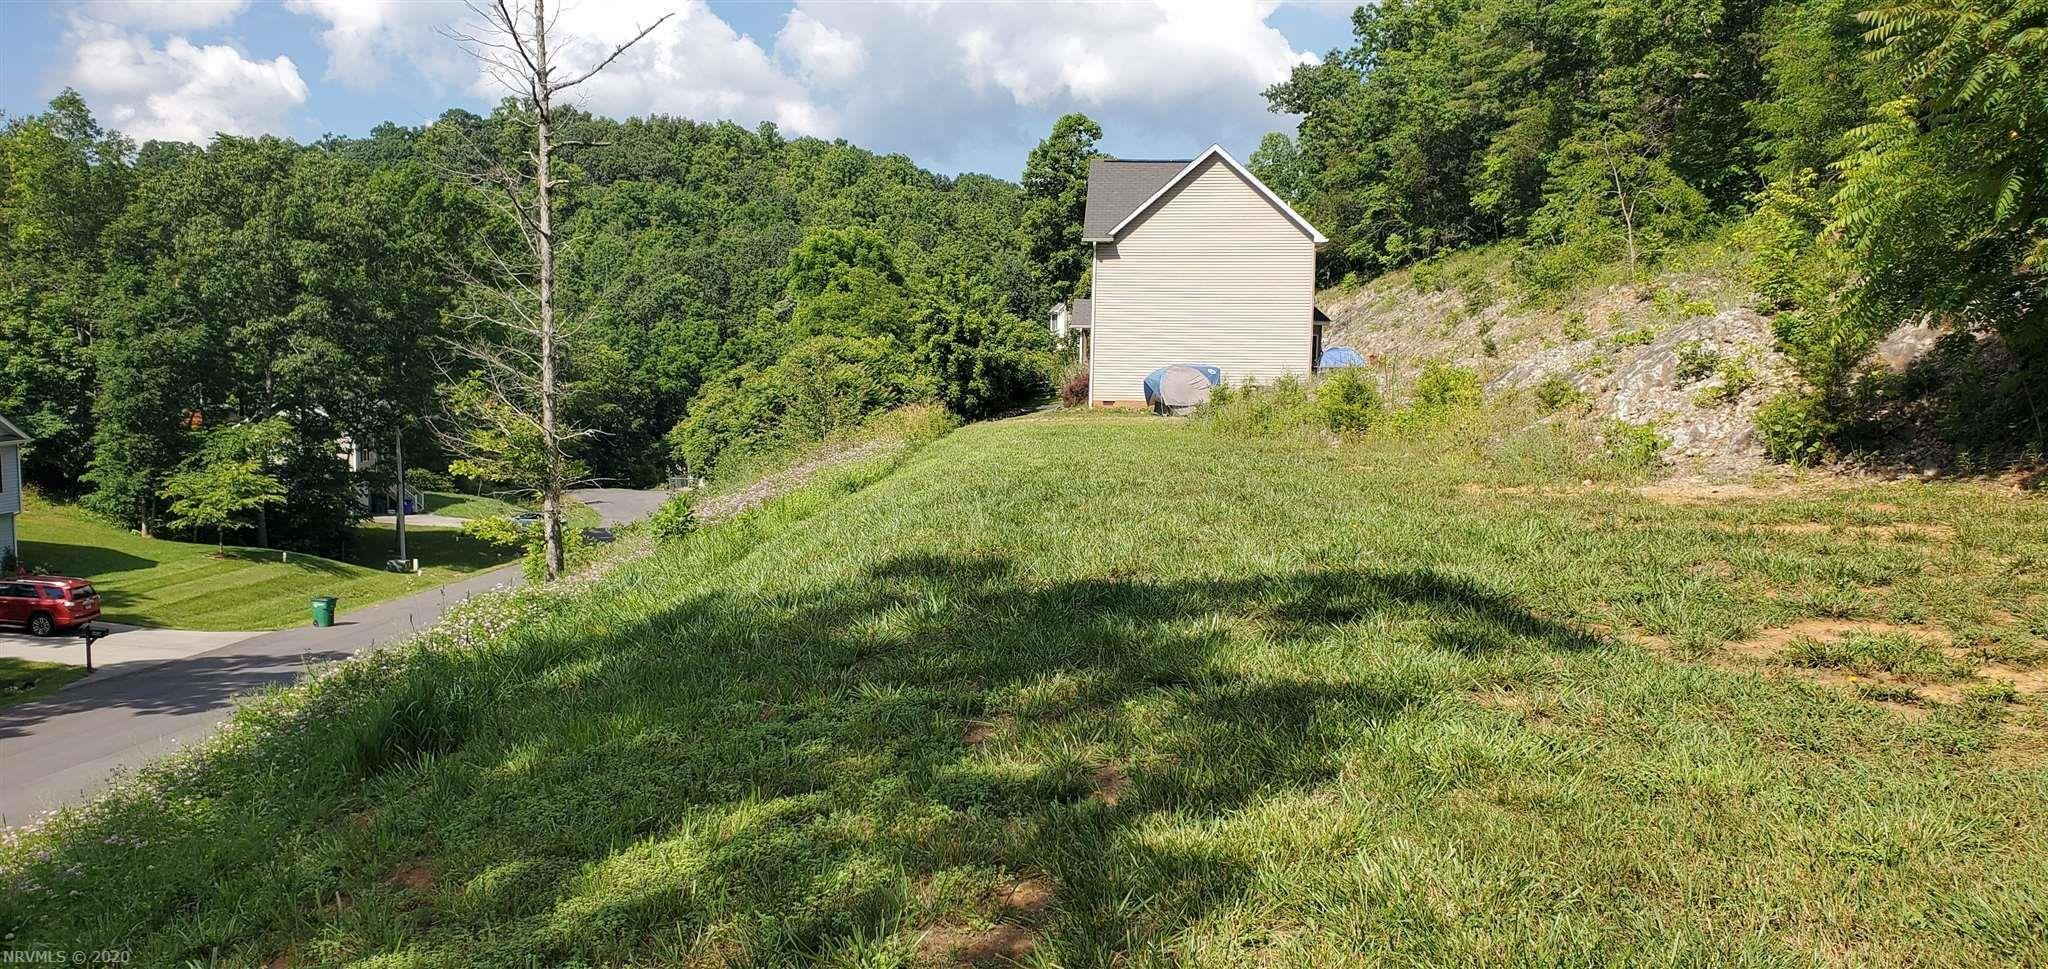 Build your next home on this 1.296 acre vacant lot, in this family friendly neighborhood, just minutes from I-81, Downtown Christiansburg, Shopping and VT.  Town water and sewer available.  Across the street from John Lemely Park.